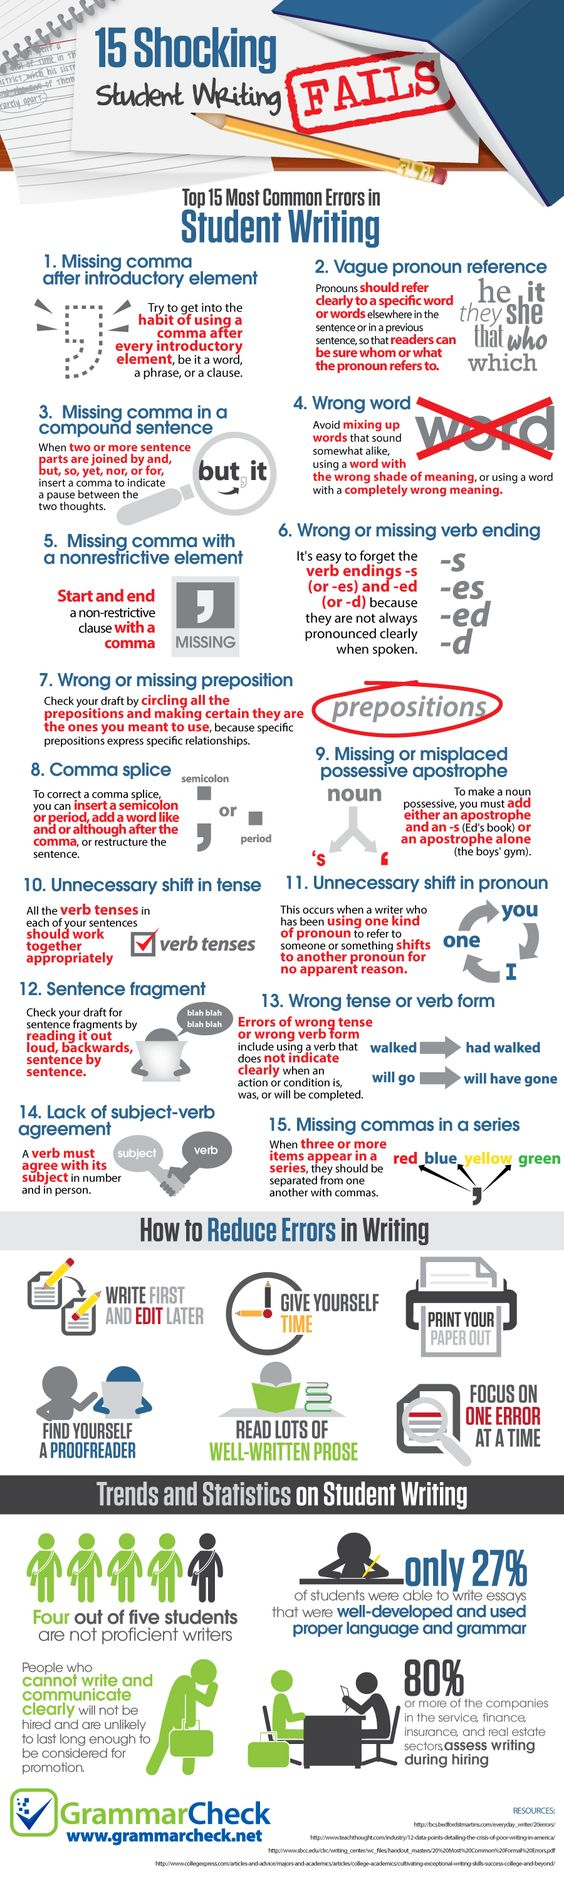 15 shocking student writing fails infographic about writing this could be a fine handout or poster for reminding all students but especially ells still struggling english grammar of the most common writing